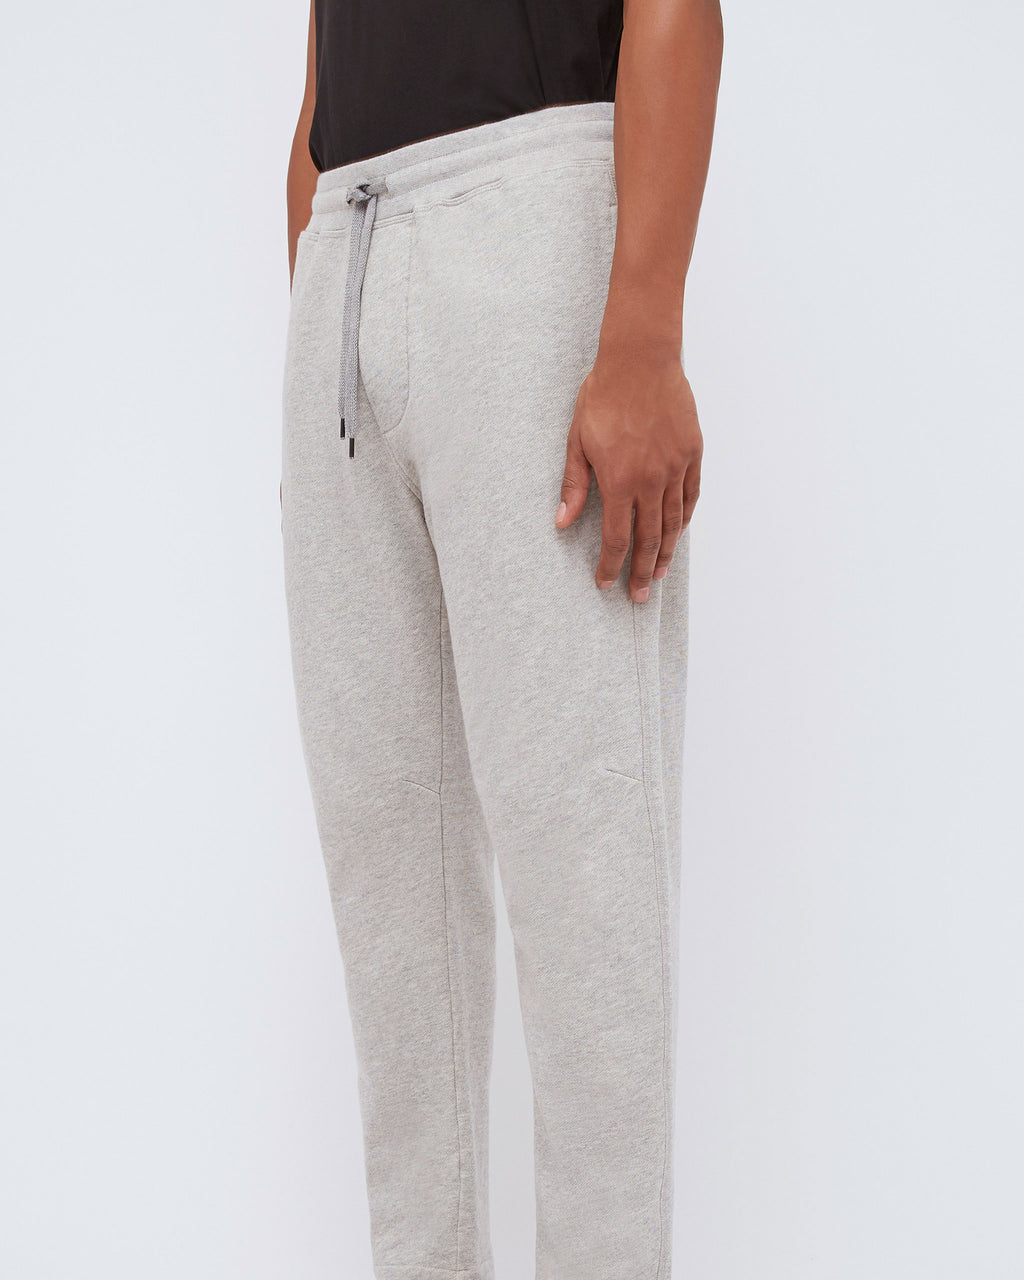 The Penmar Pant In Heather Grey